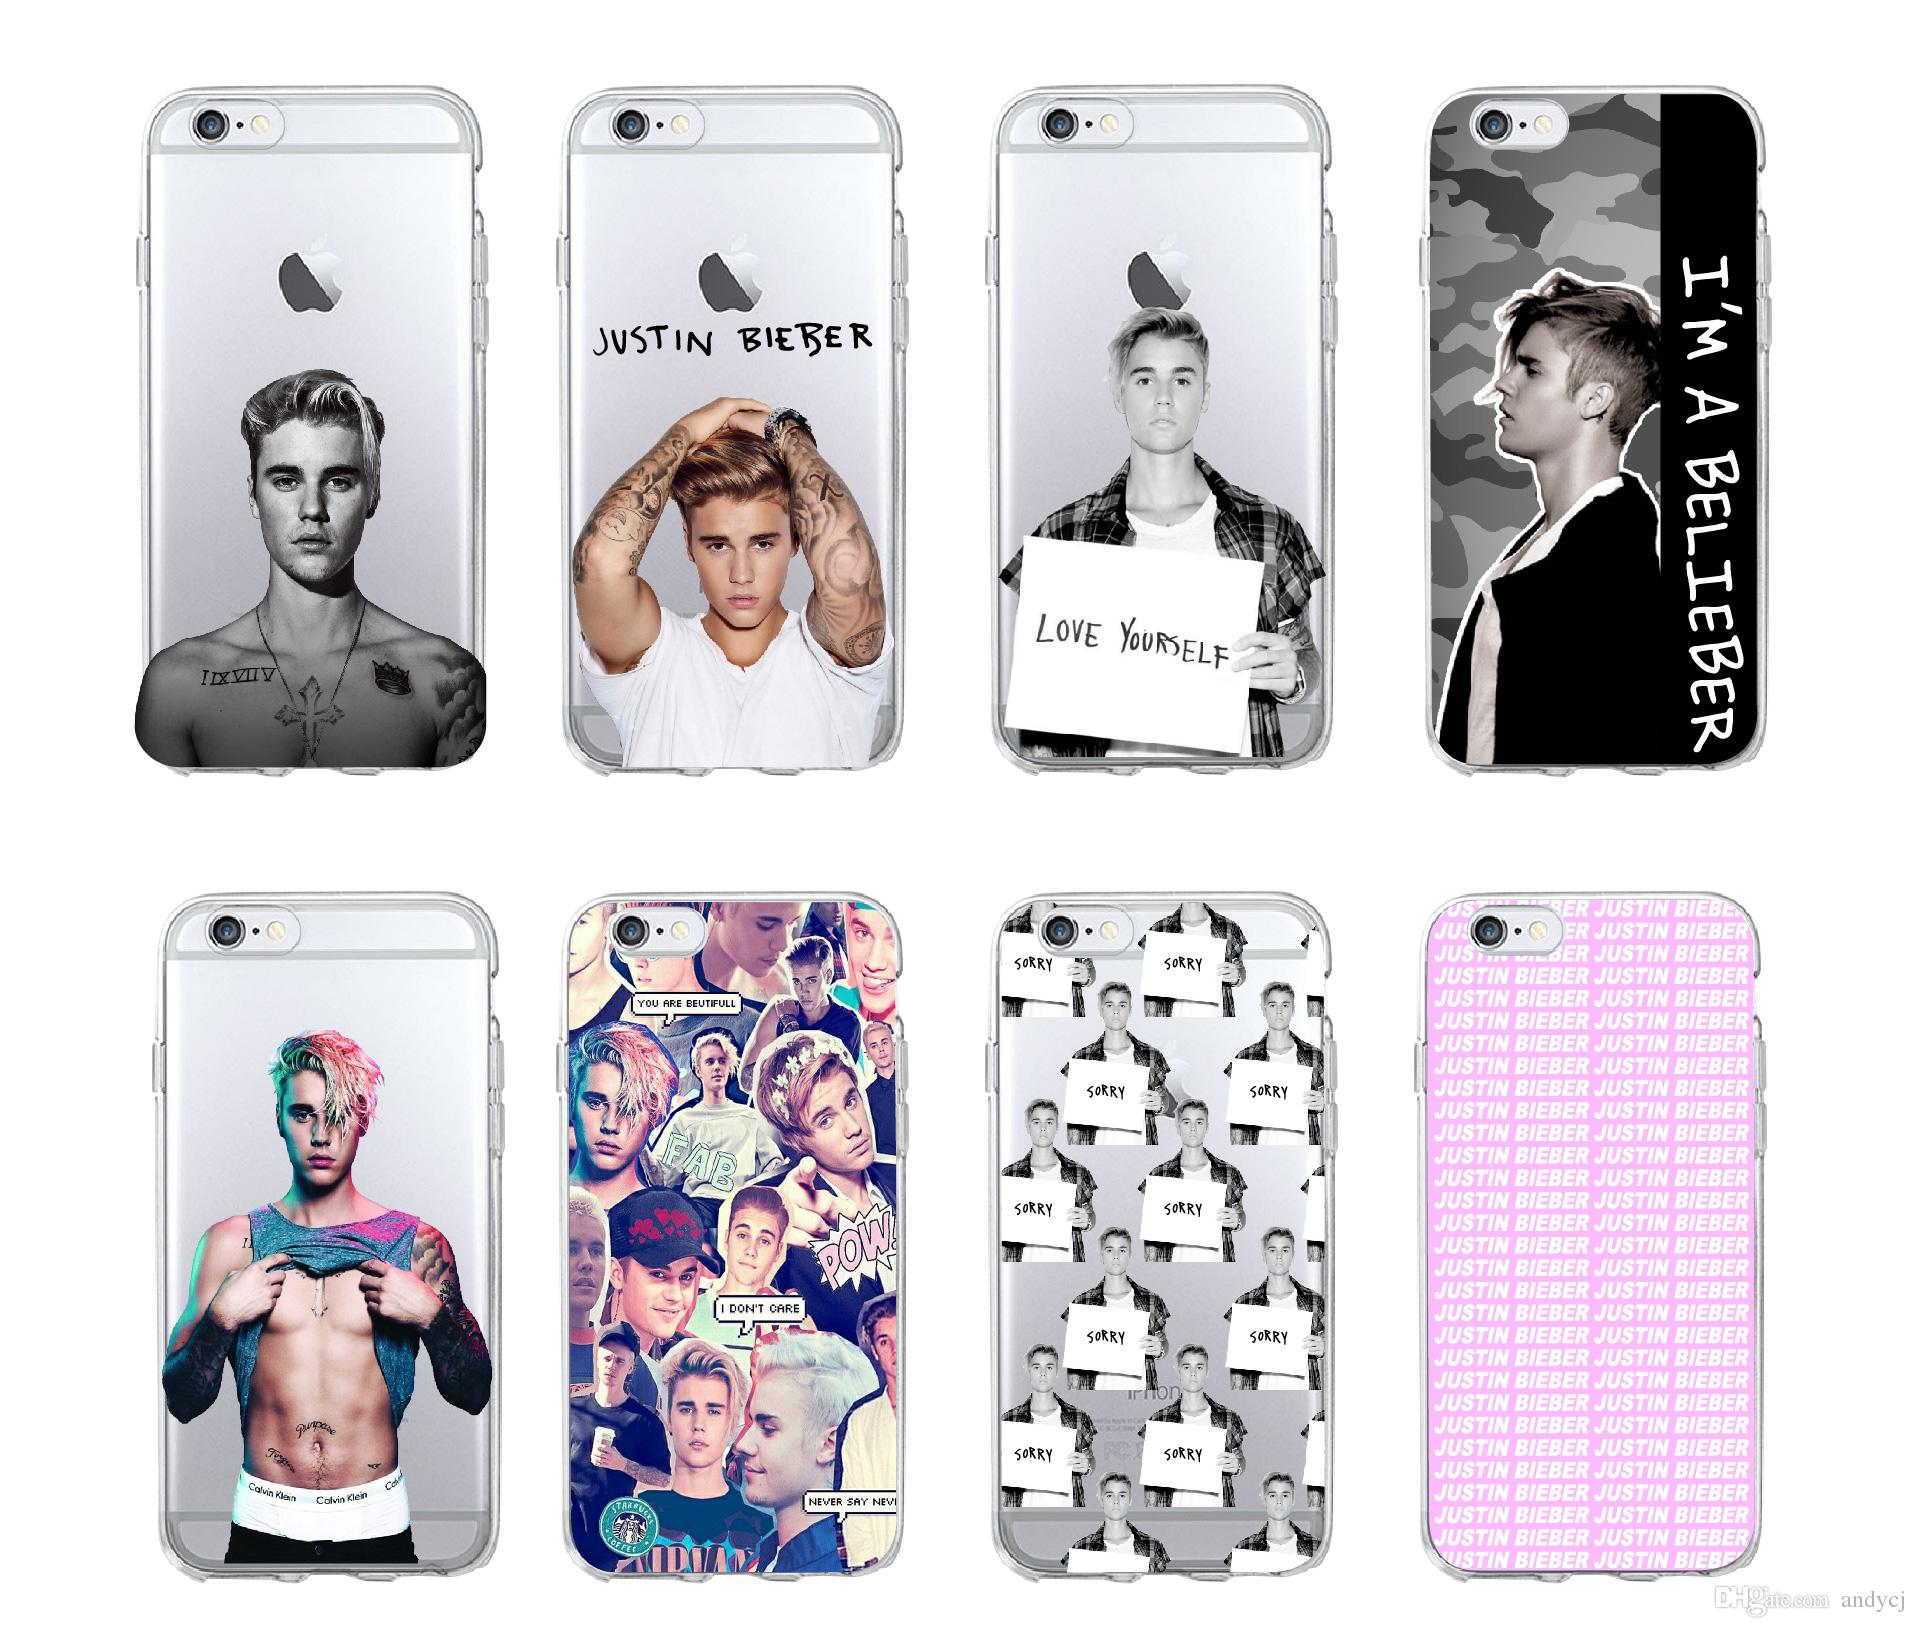 Justin Bieber Purpose Super Star Soft Silicon Phone Cases Cover for IPhone 6 6S 7 8 Plus 5S SE X XR Xs Max